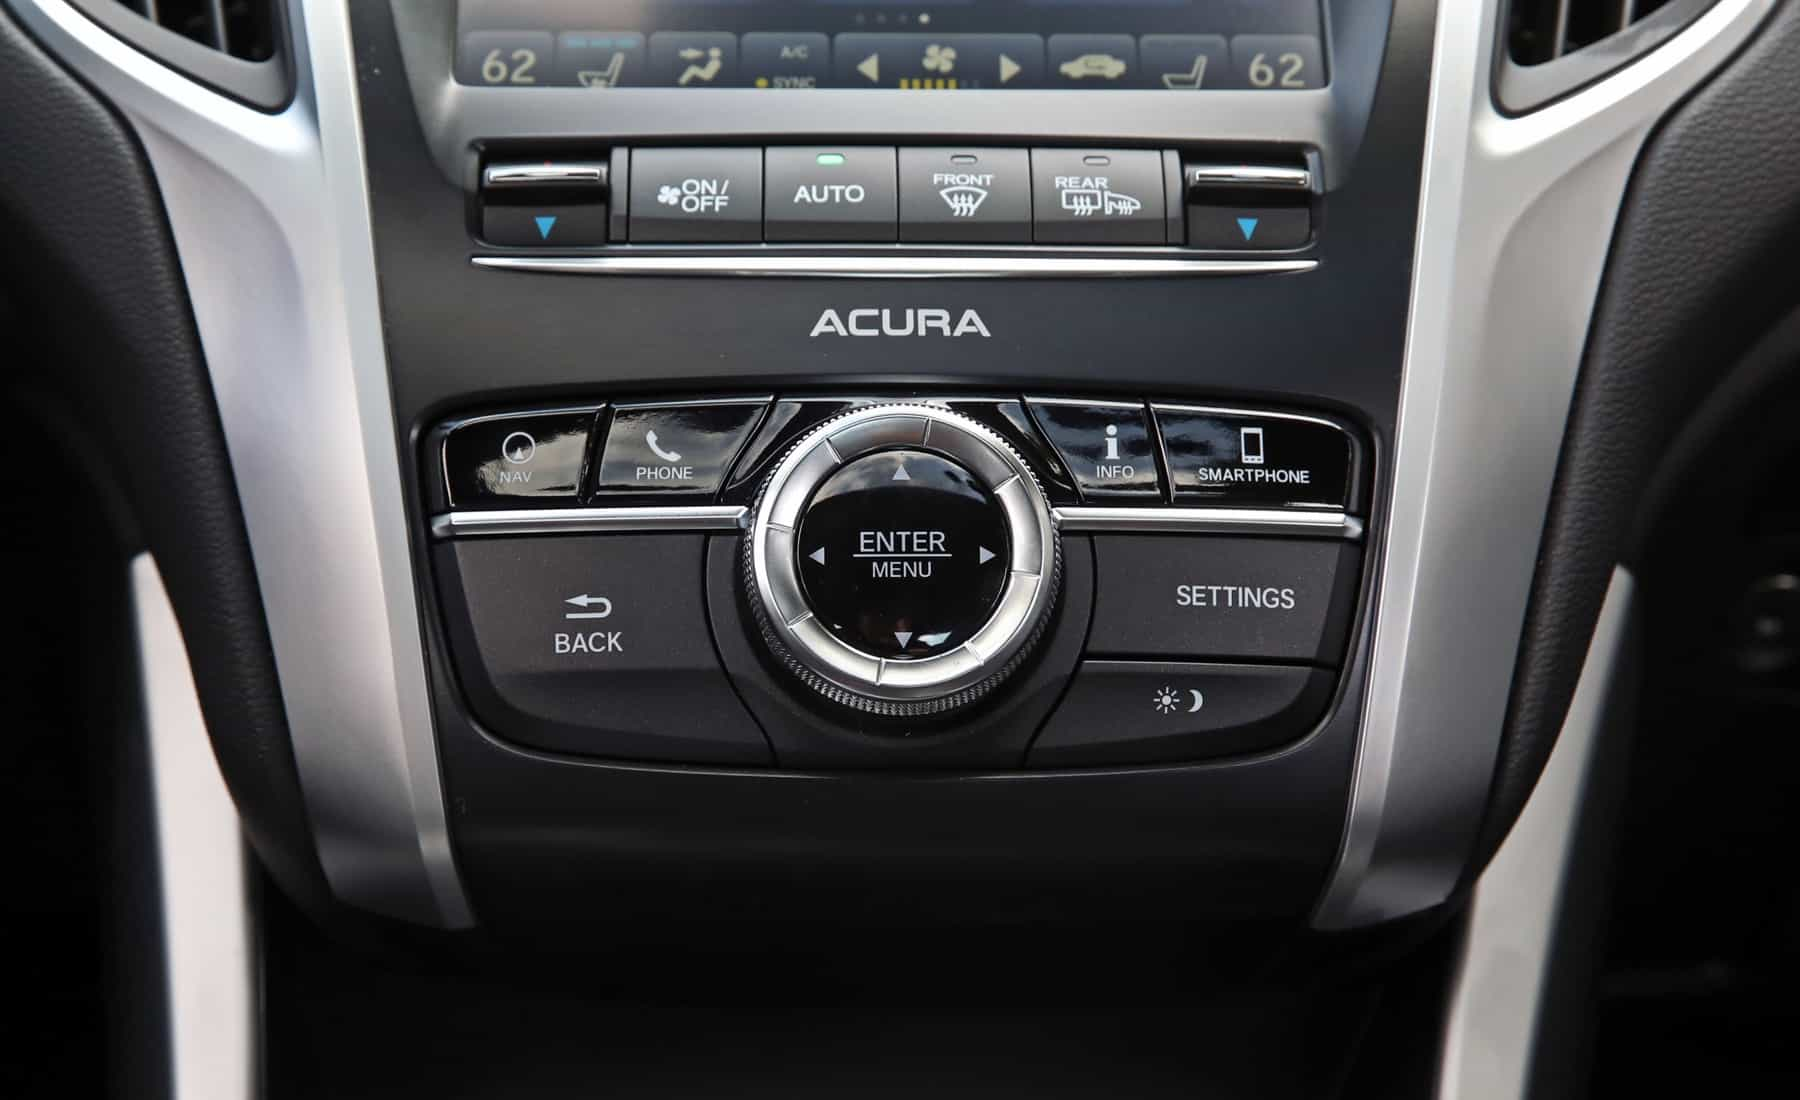 2018 Acura TLX Interior View Climate Control (Photo 21 of 46)